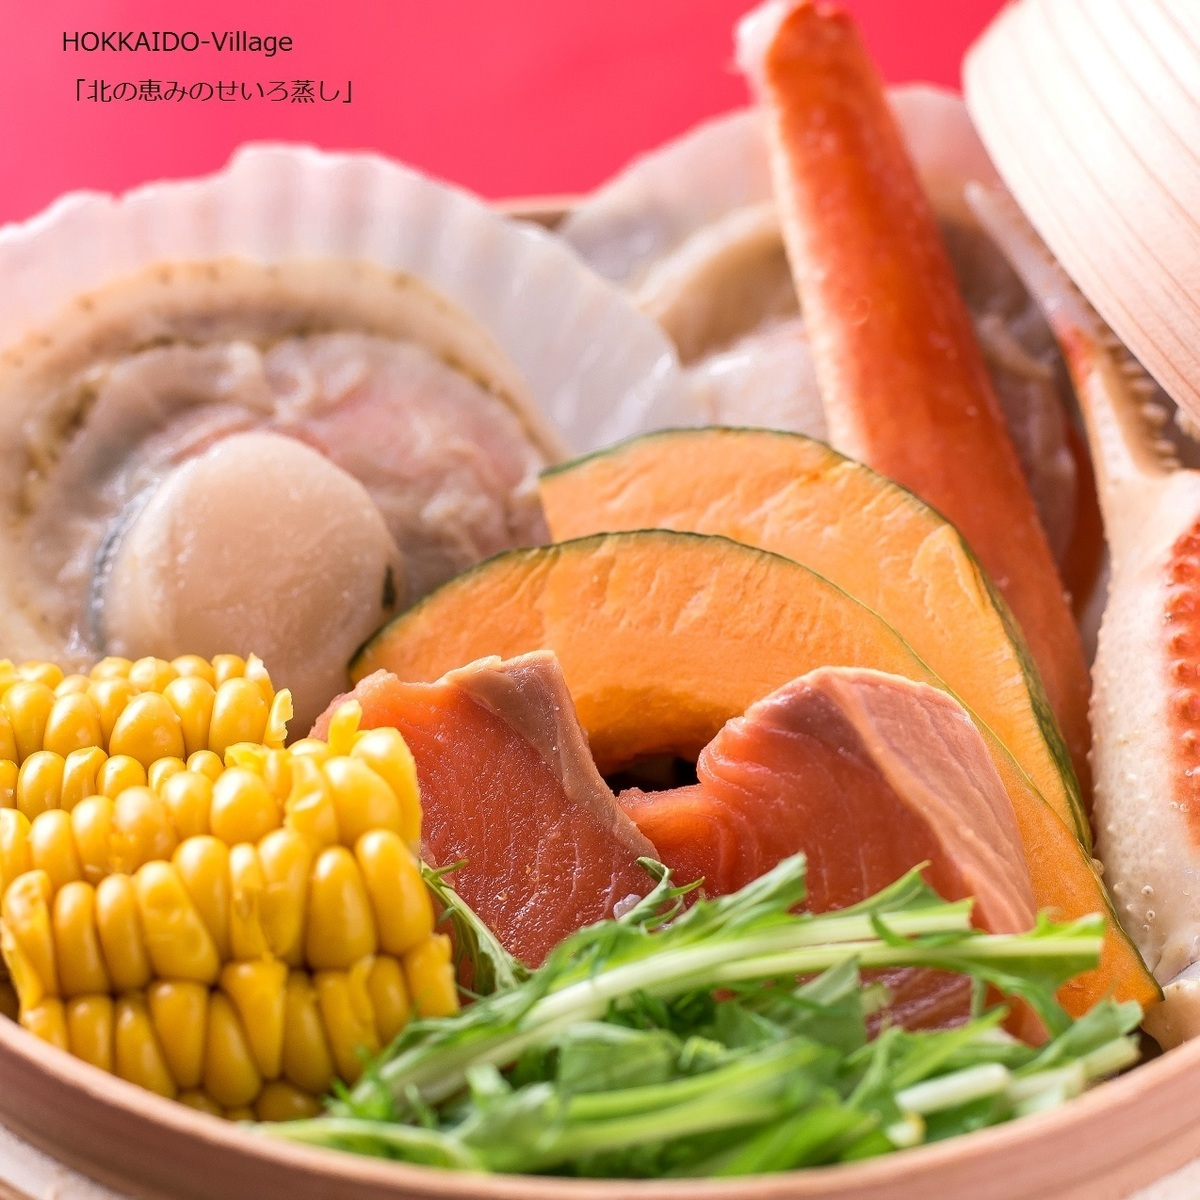 We are also accepting reservations for banquets that enjoy seasonal Hokkaido ingredients in private rooms ♪